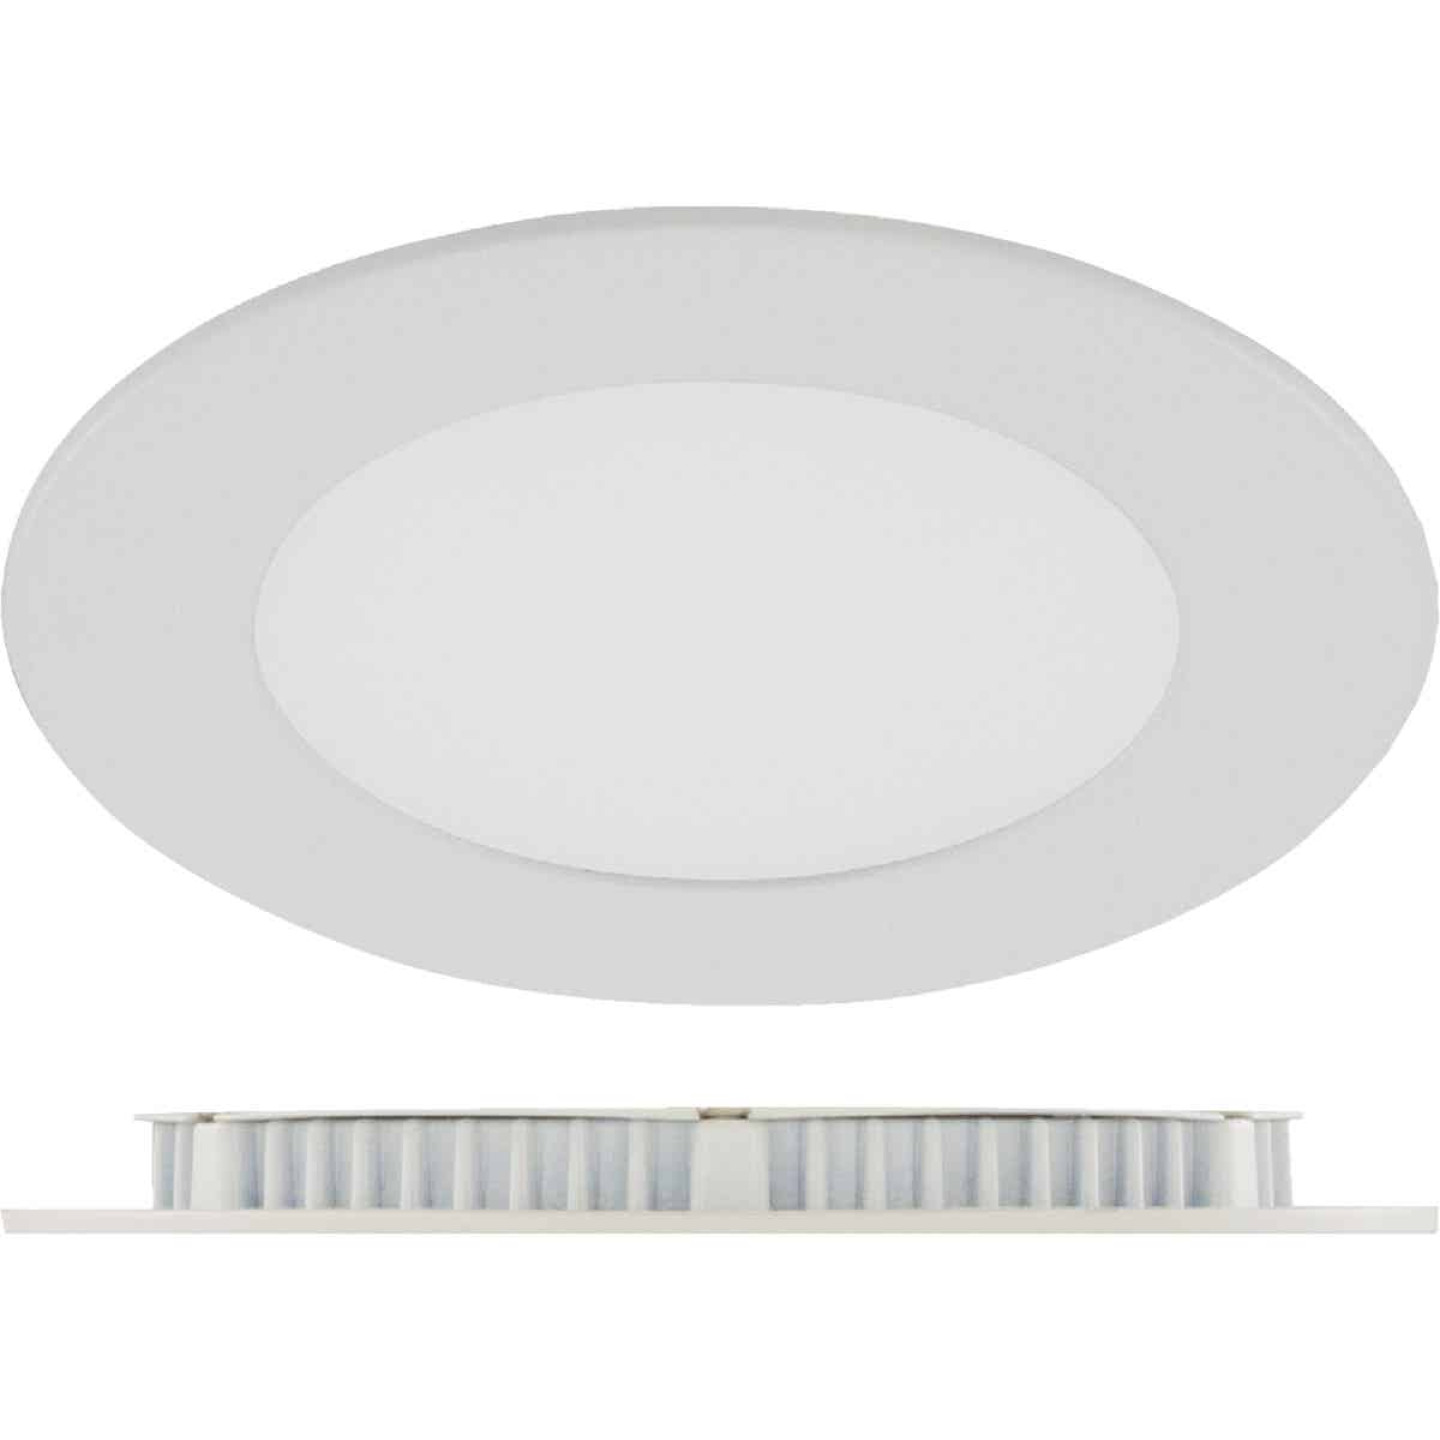 Liteline Trenz ThinLED 4 In. New Construction/Remodel IC Rated White 600 Lm. 3000K Recessed Light Kit Image 1